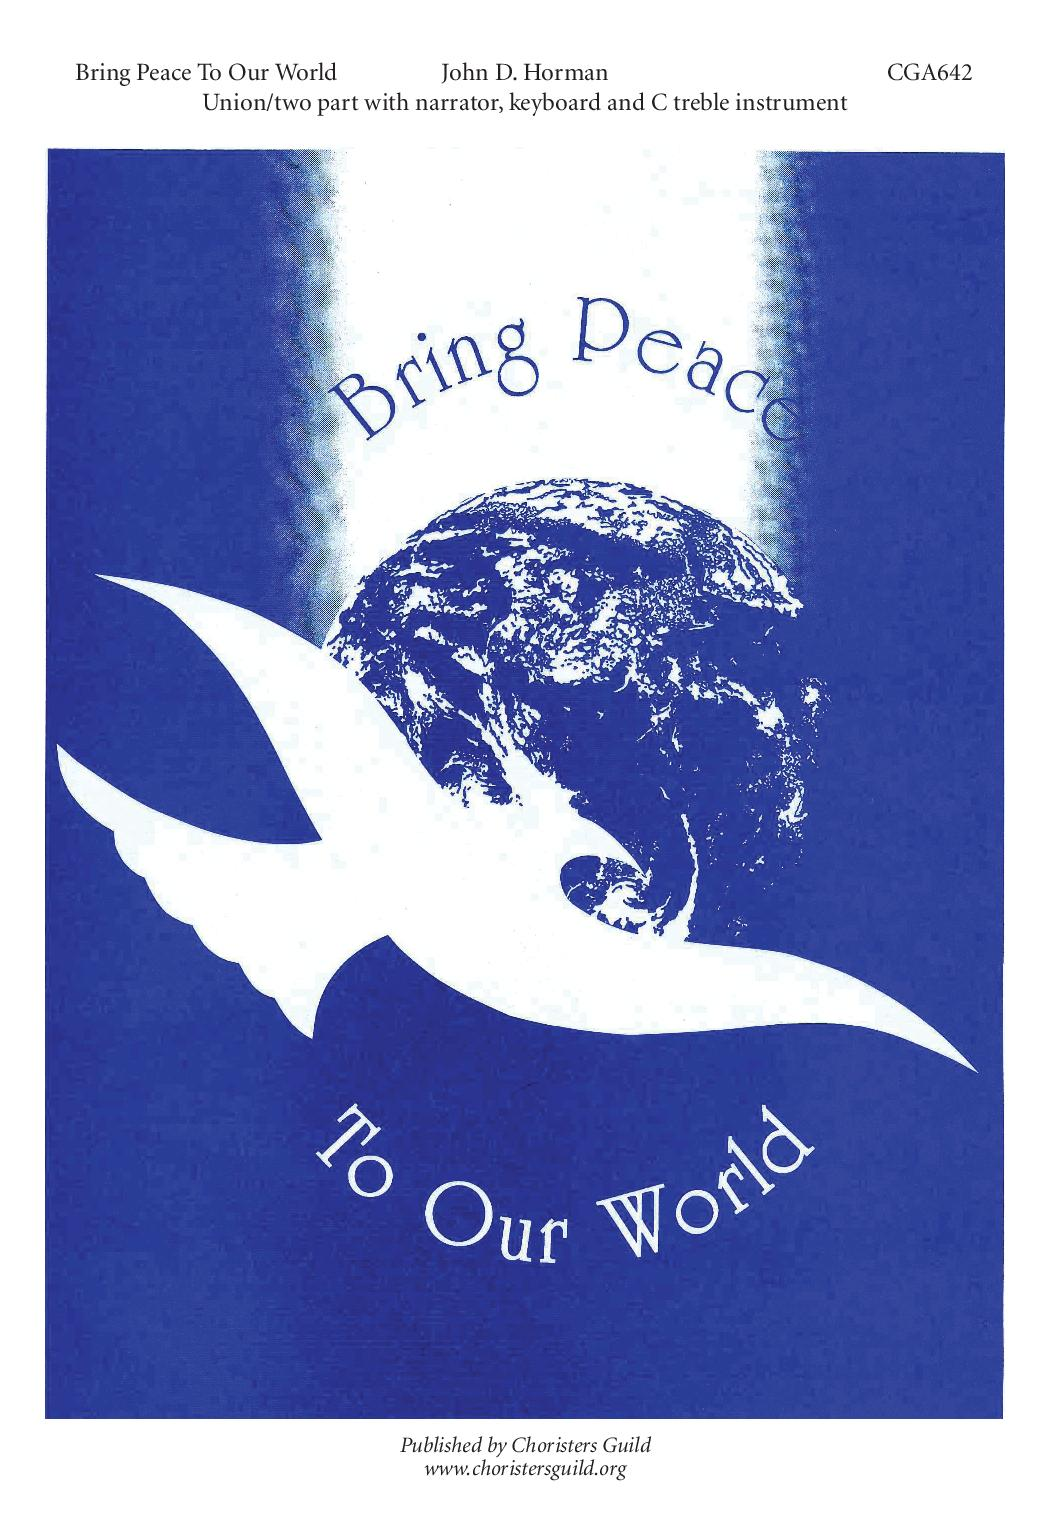 Bring Peace to Our World